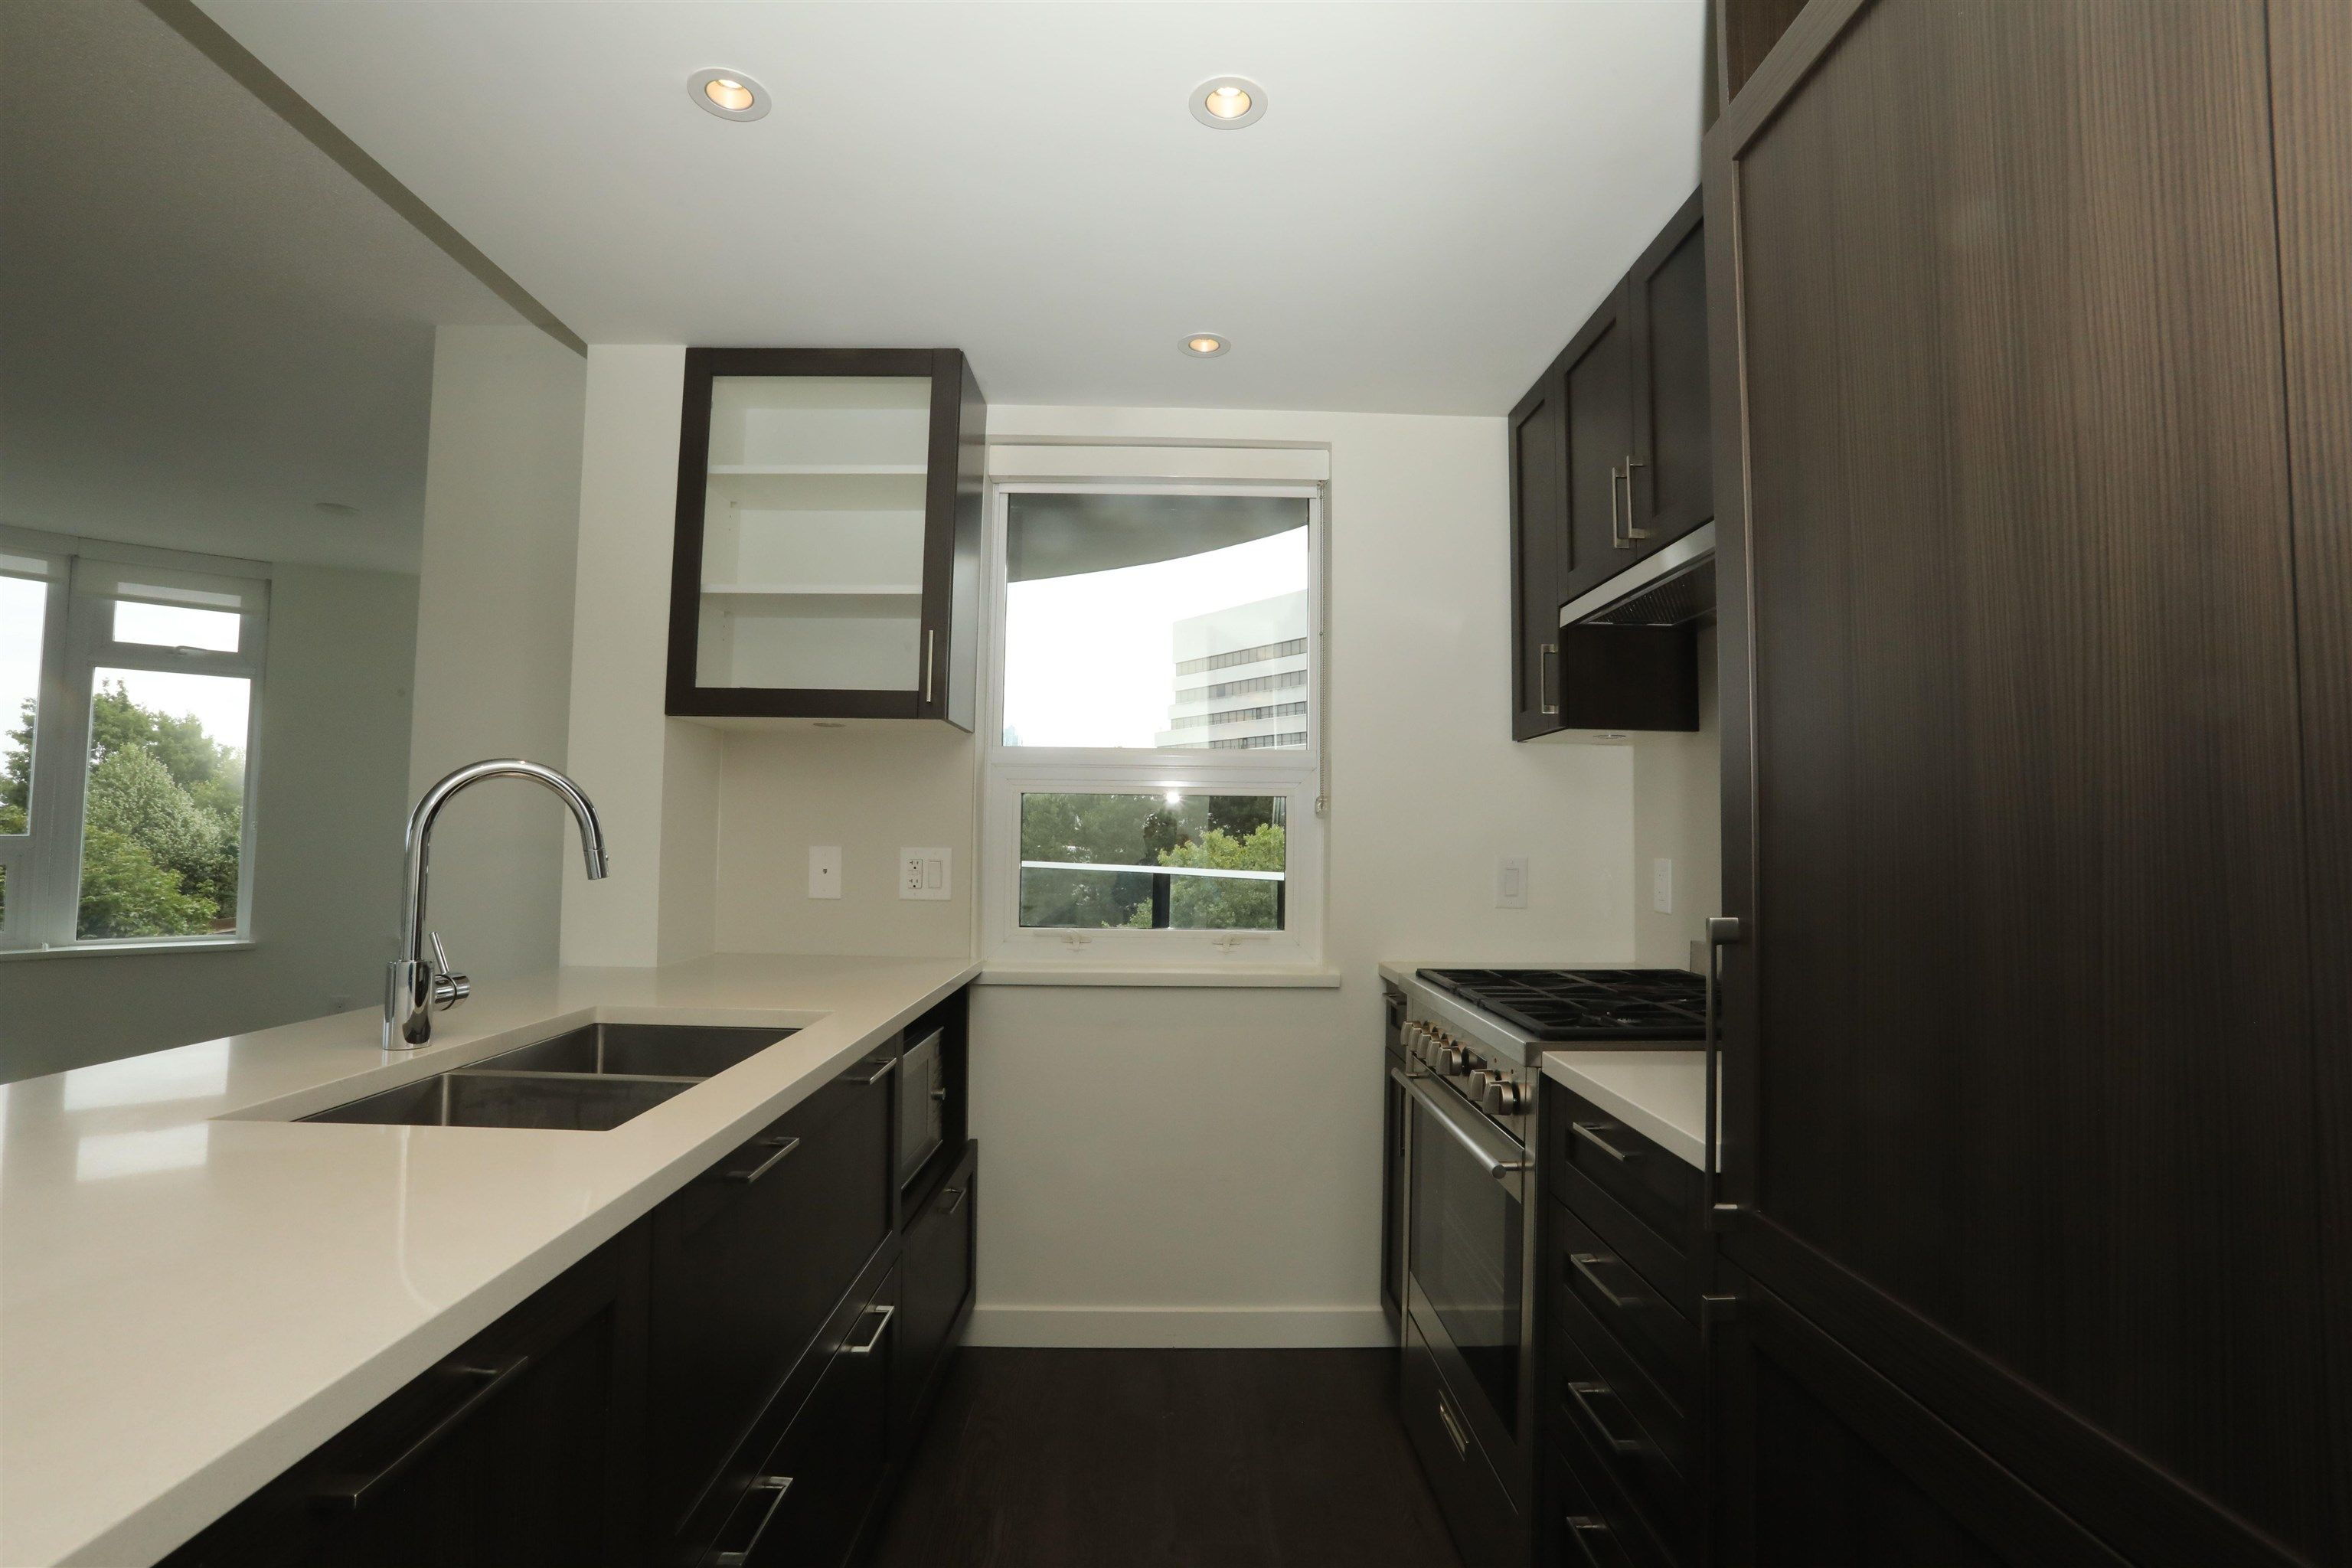 Main Photo: 913 5470 ORMIDALE Street in Vancouver: Collingwood VE Condo for sale (Vancouver East)  : MLS®# R2611619